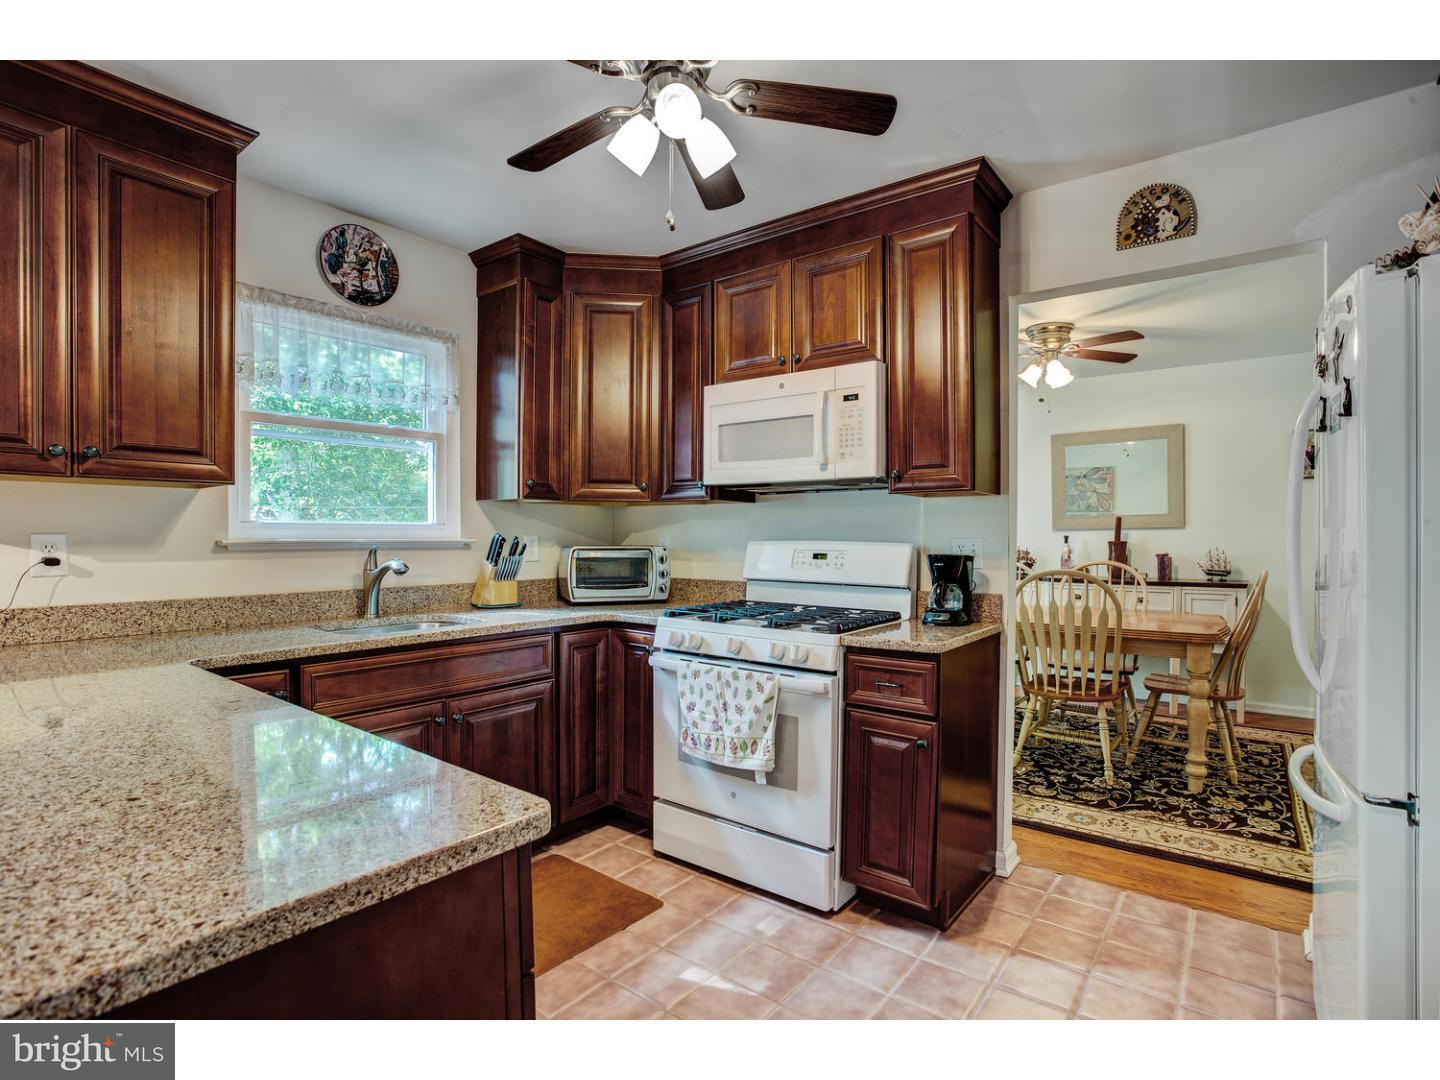 Single Family Home for Sale at 470 NAUTILUS Drive Manahawkin, New Jersey 08050 United States